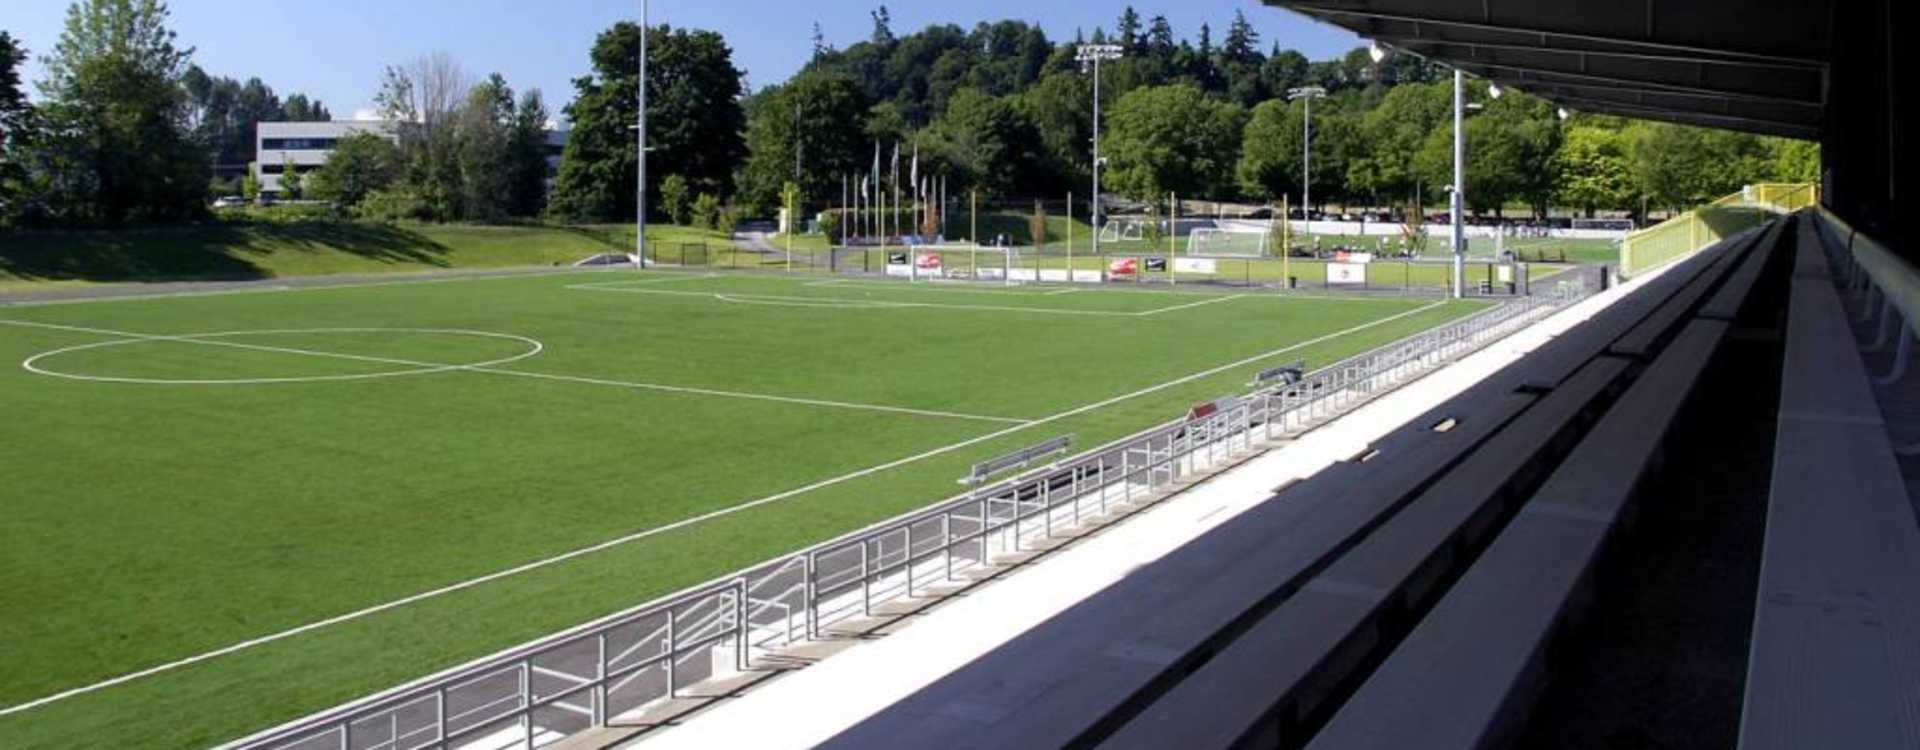 meeting-facility-Starfire_Sports_Meeting_Facility-3.jpg